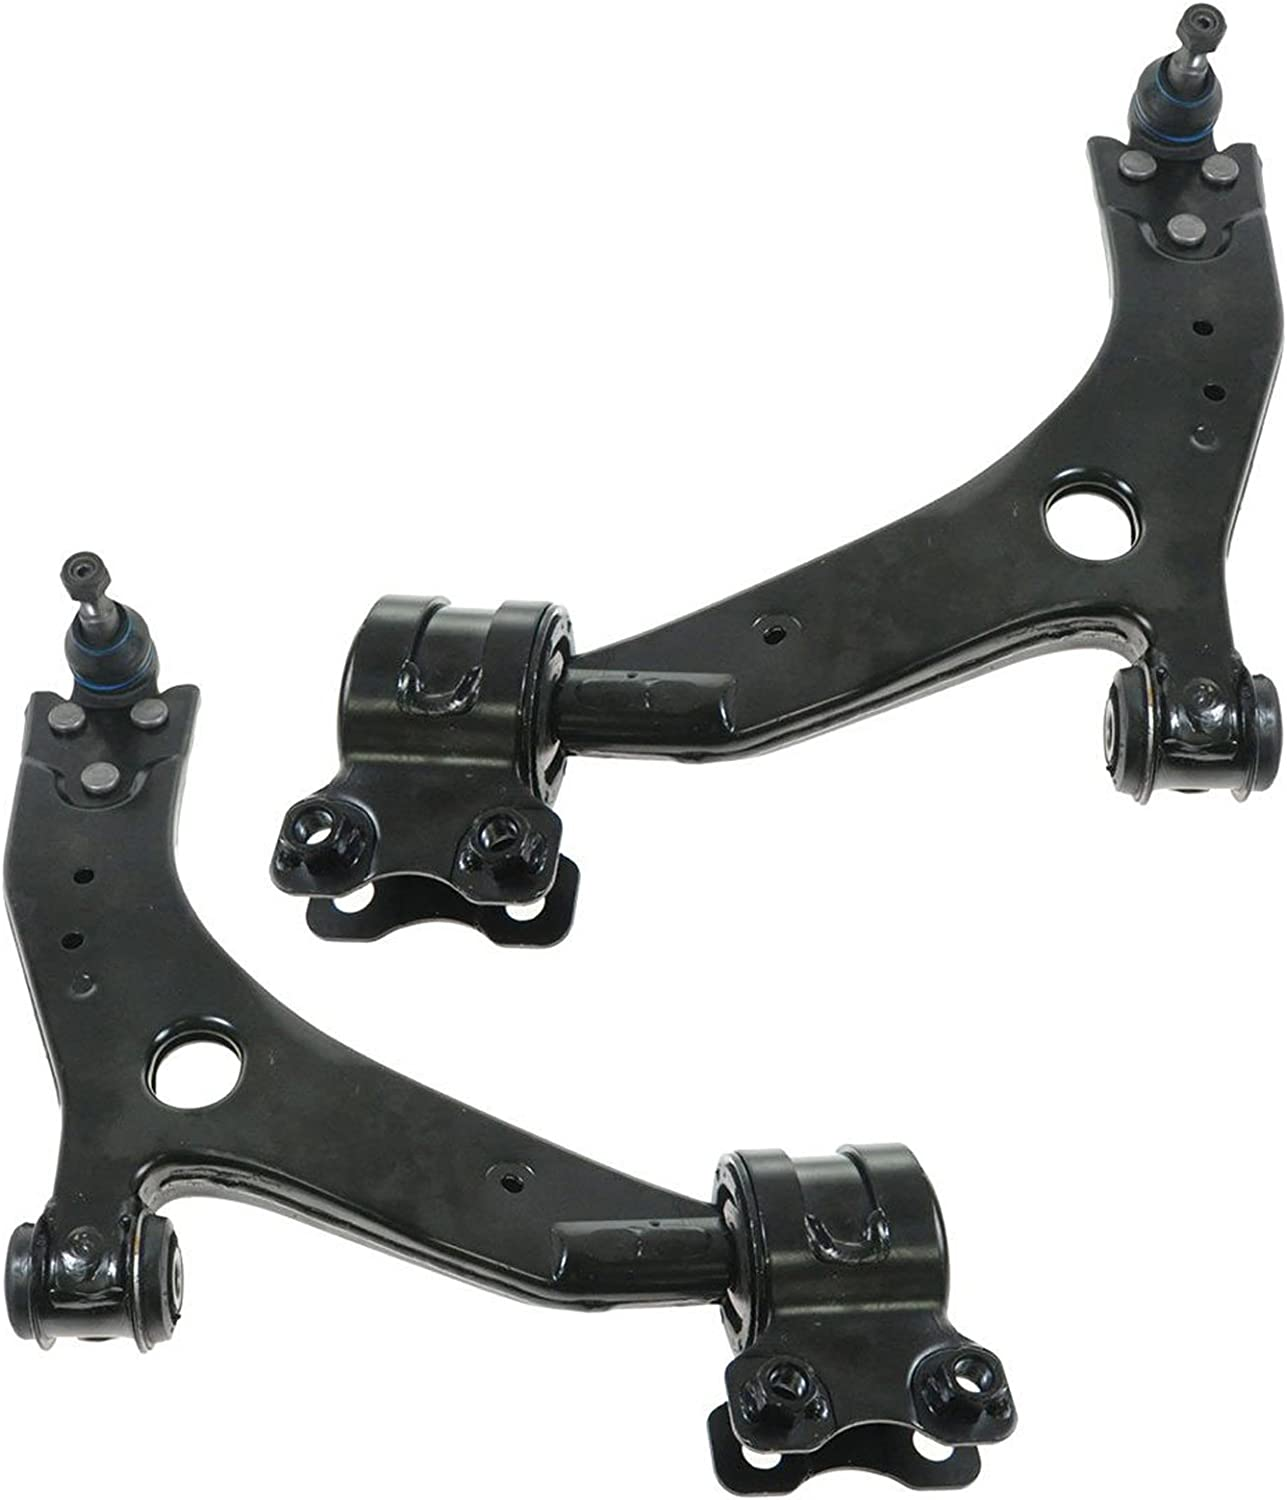 2 Front Lower Control Arms 15mm for Volvo S40 C70 V50 04-06 Made in Taiwan